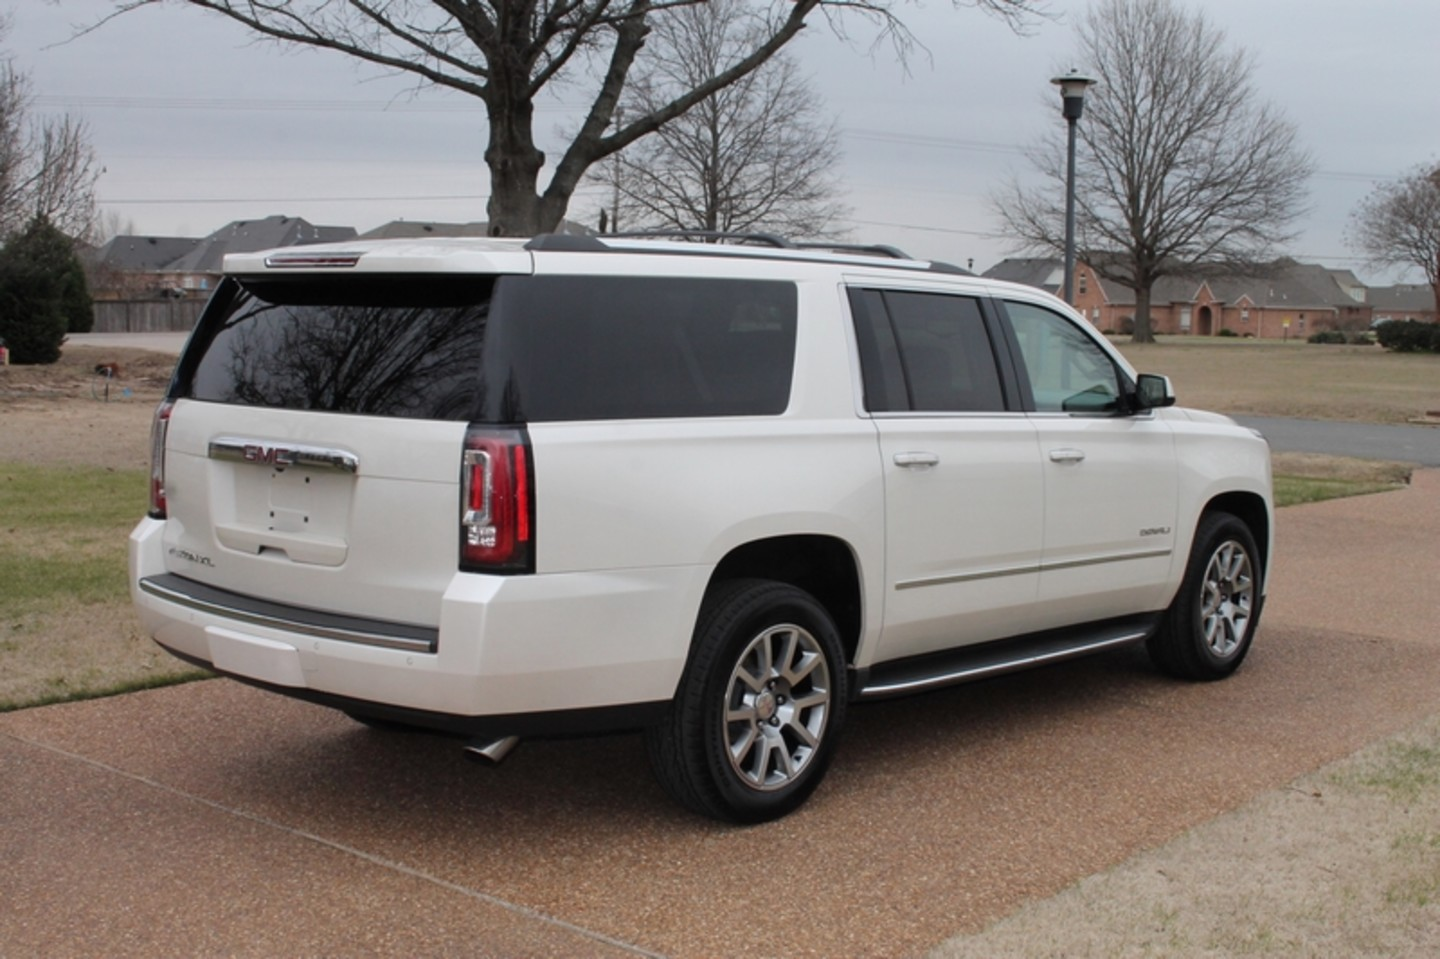 2015 gmc yukon xl denali 4wd price used cars memphis hallum motors citystatezip. Black Bedroom Furniture Sets. Home Design Ideas